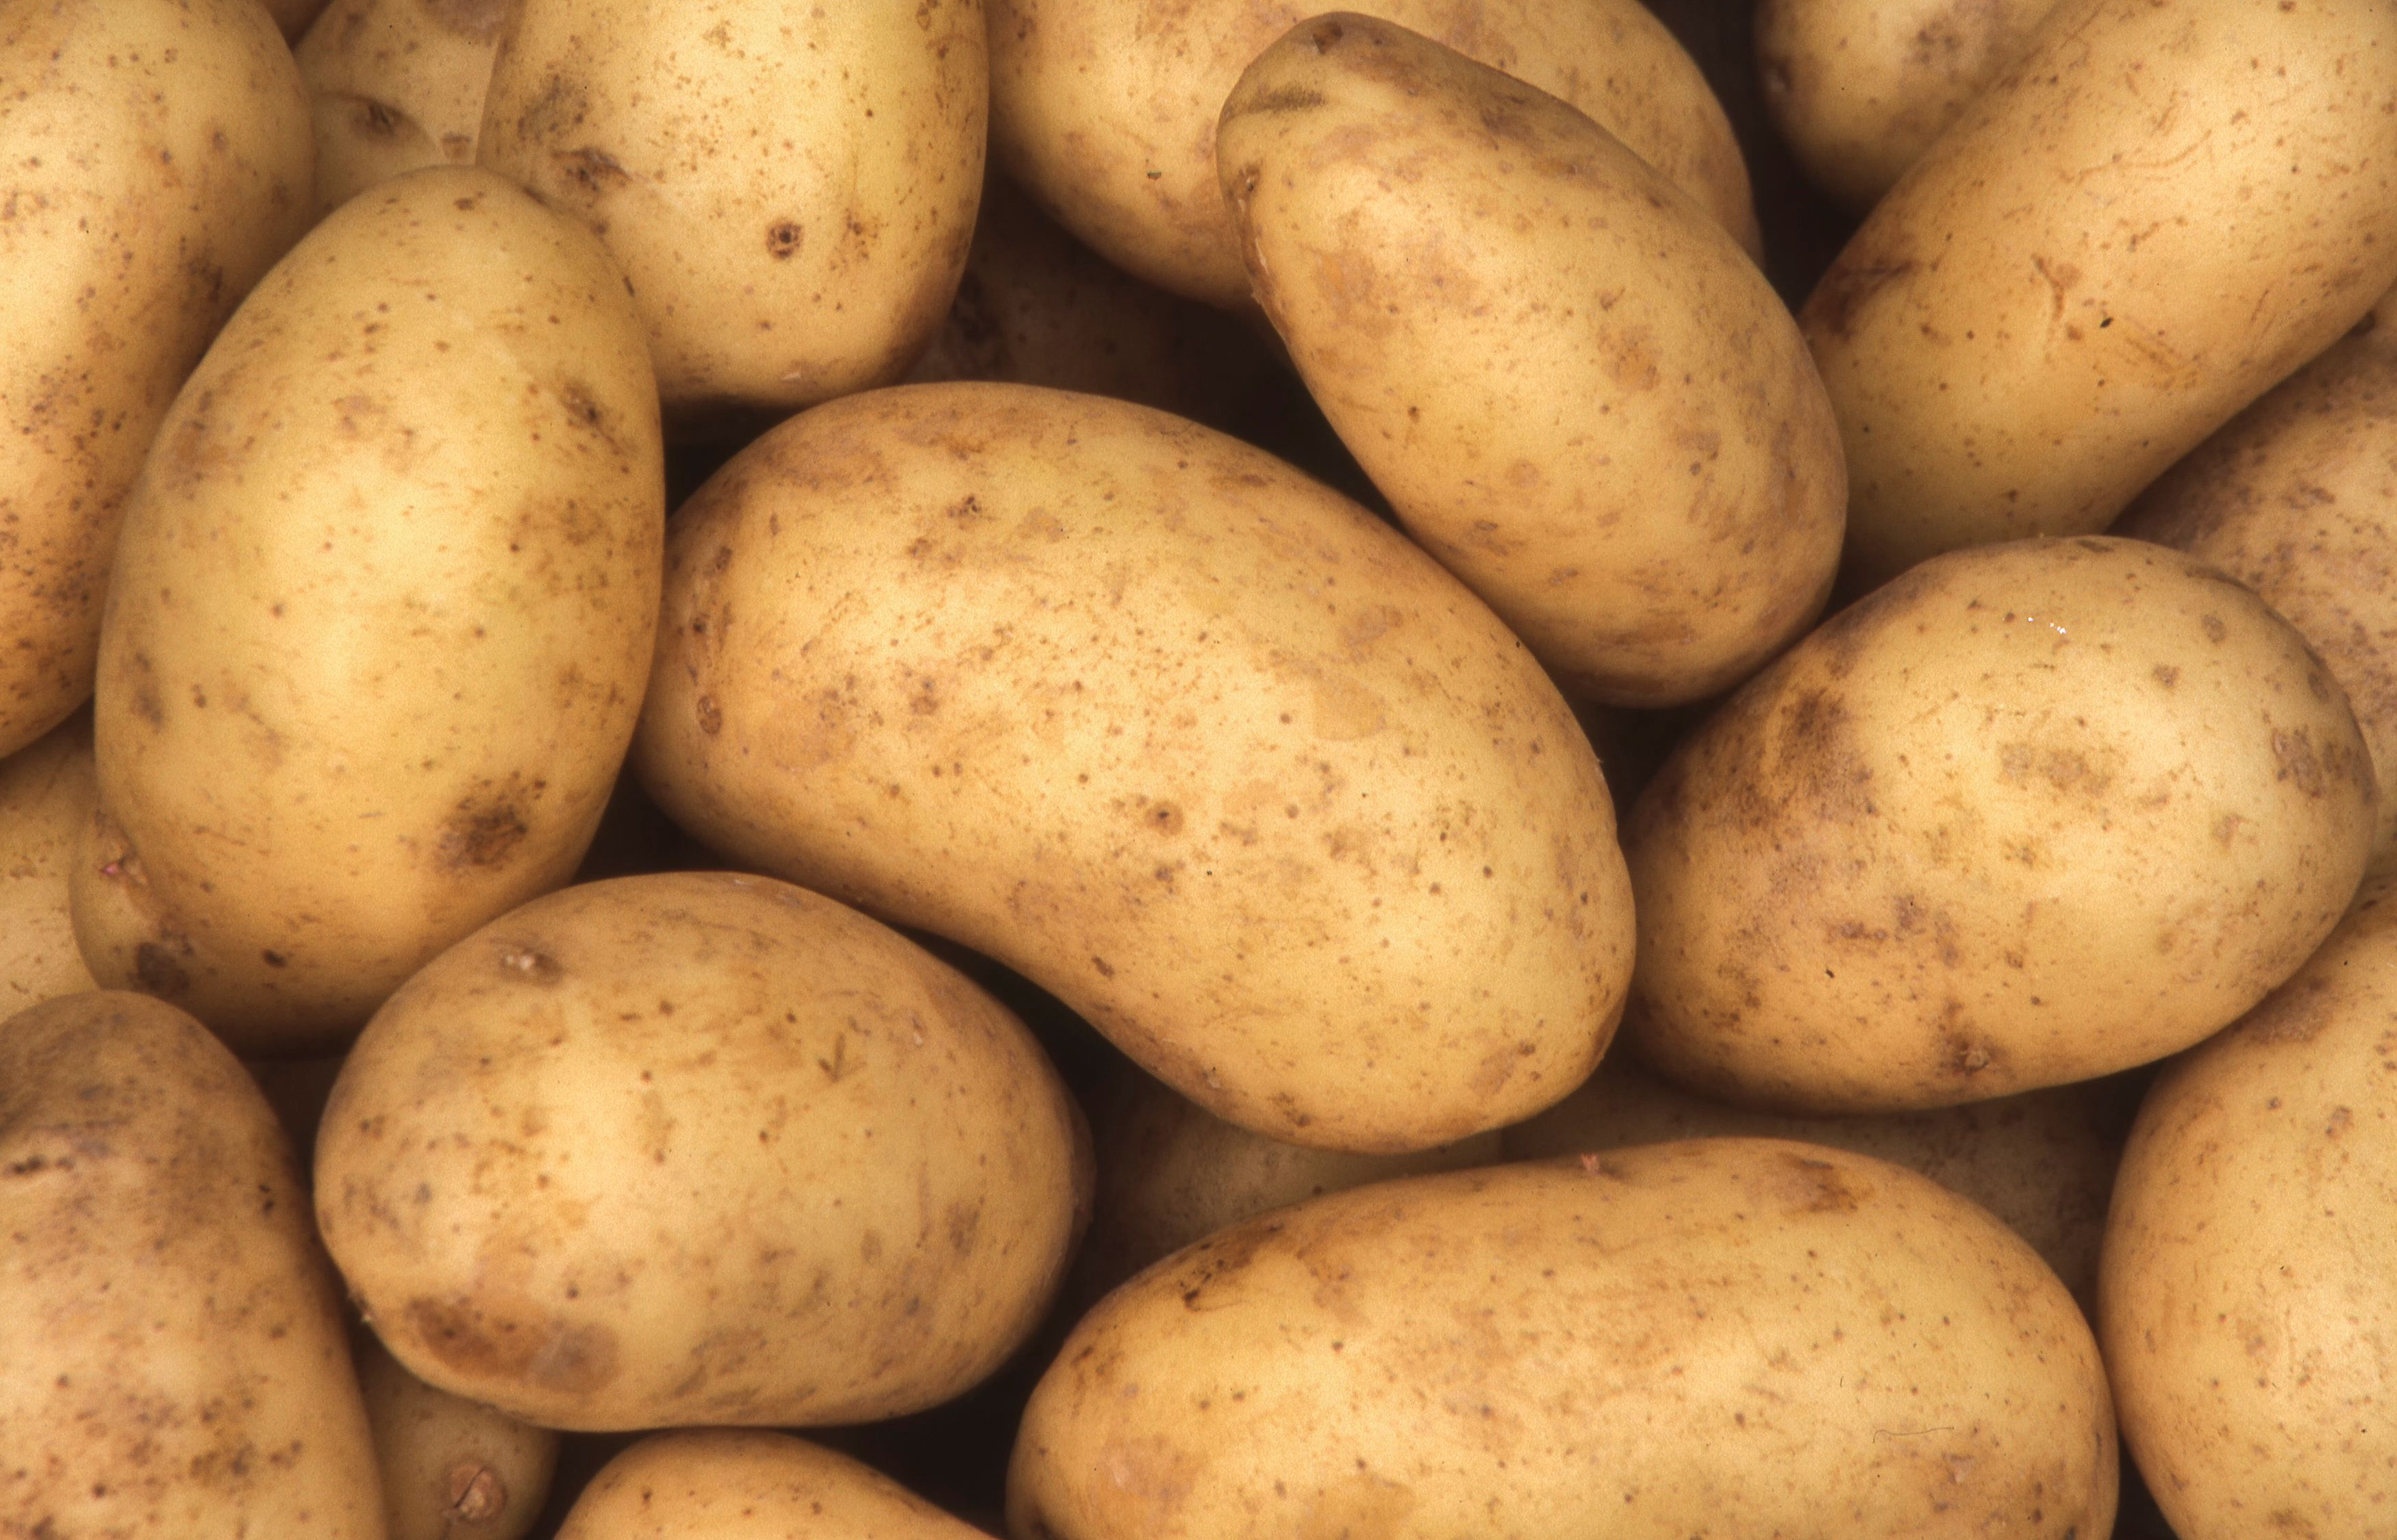 Charlotte potatoes background which are a popular early variety potato